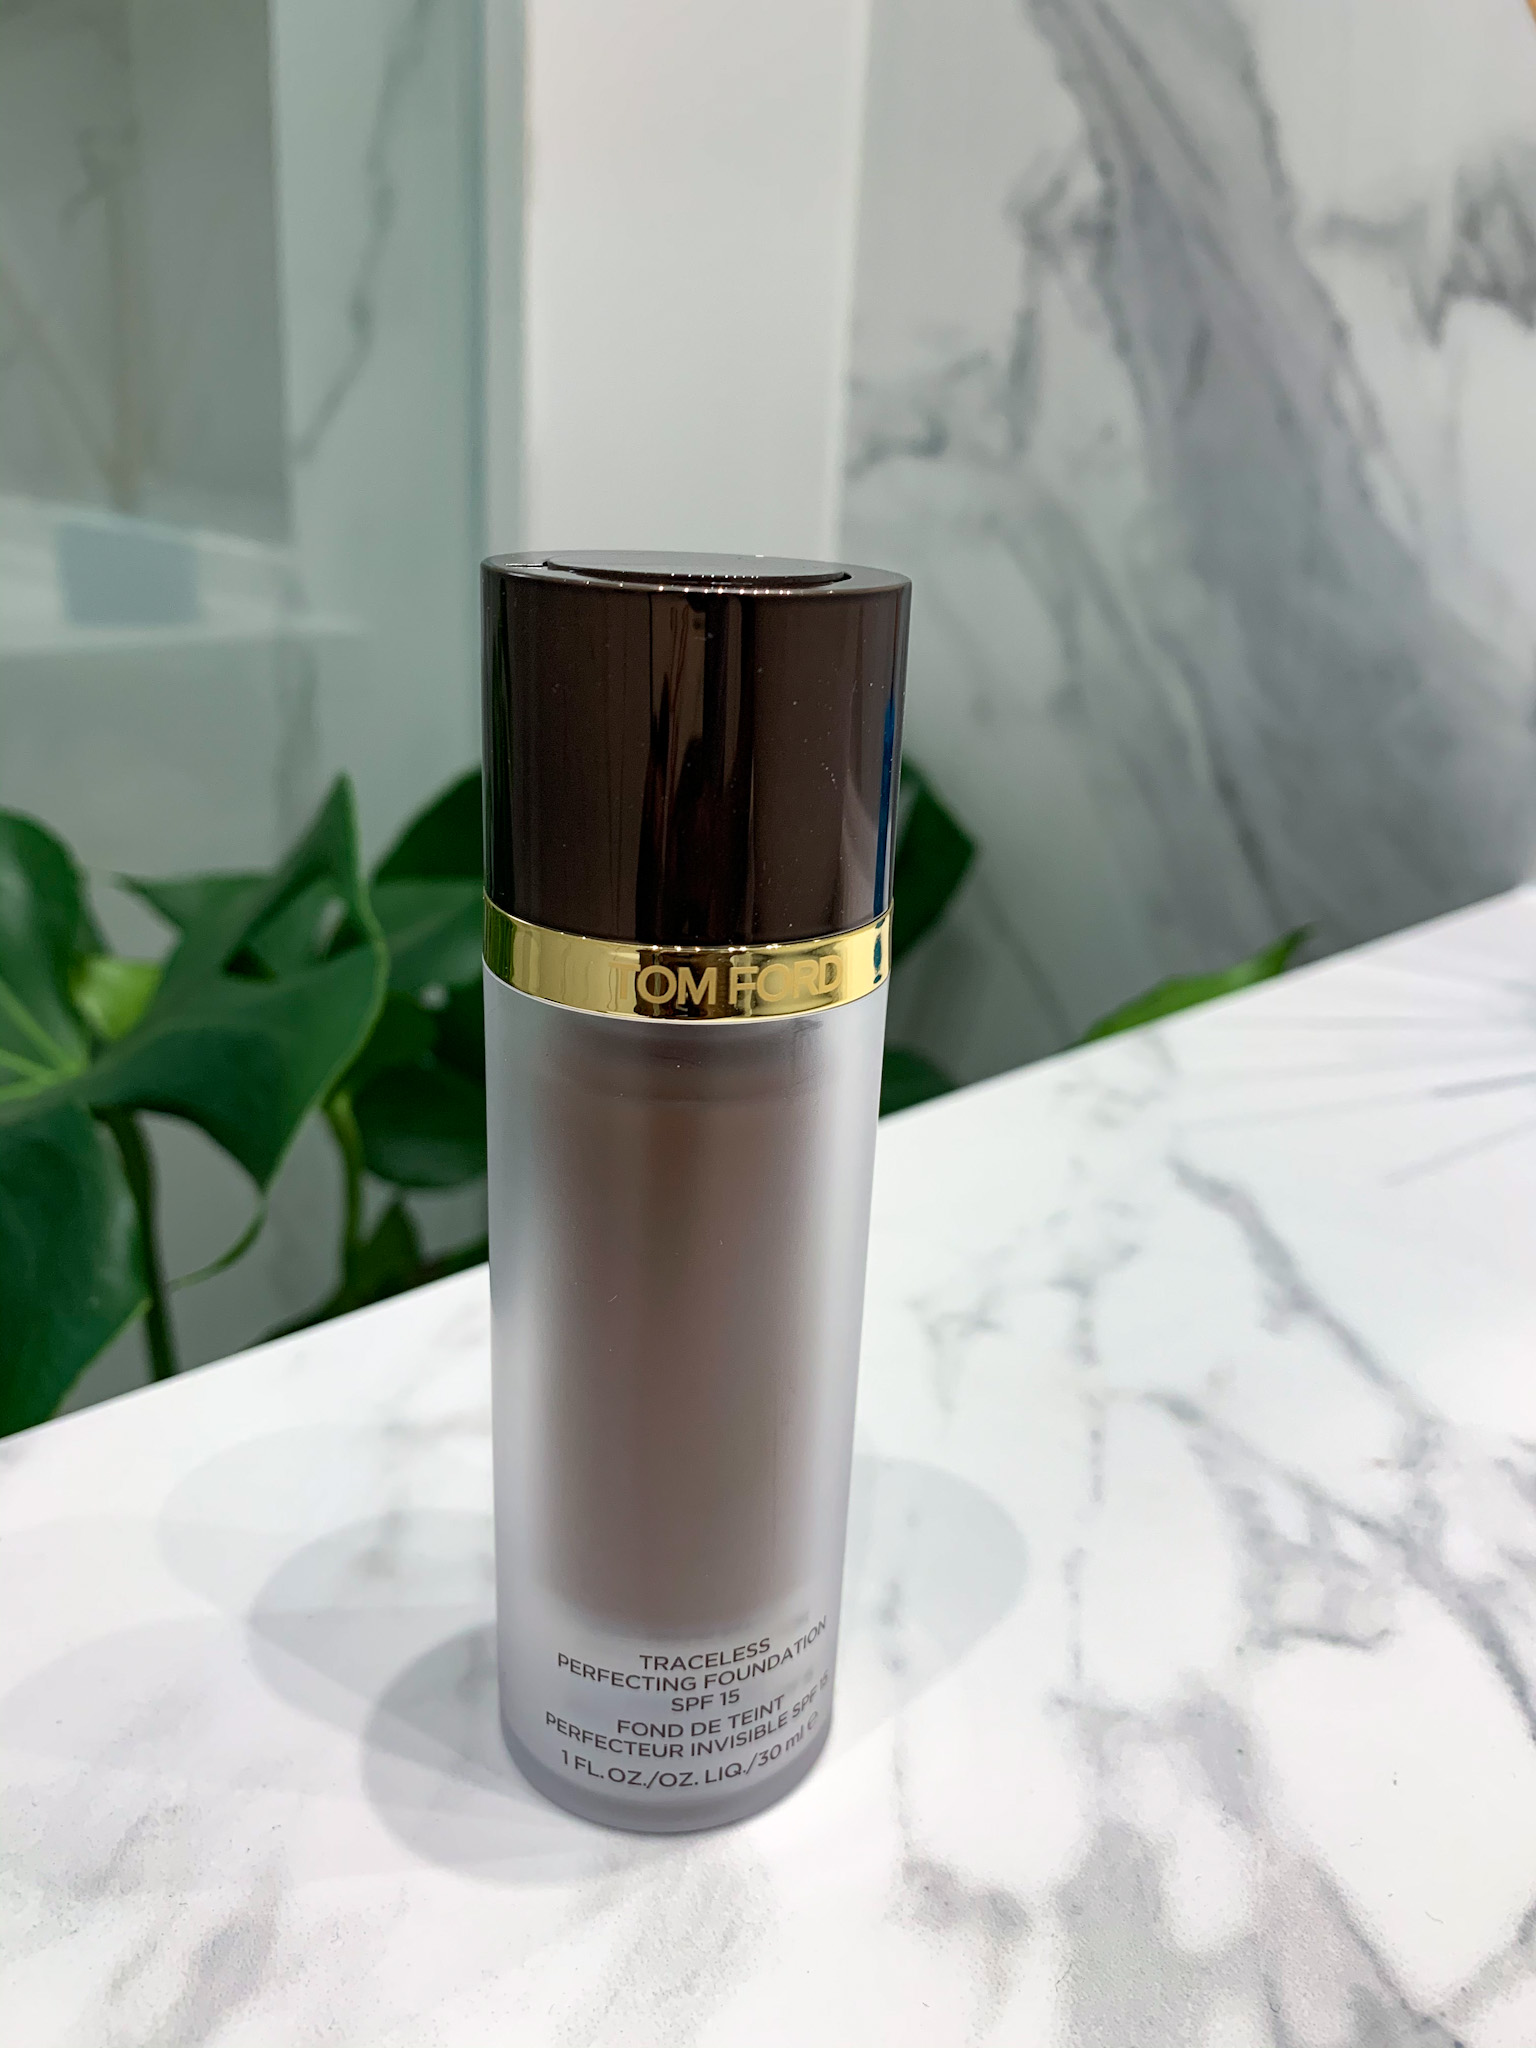 tom-ford-trceless-perfecting-foundation